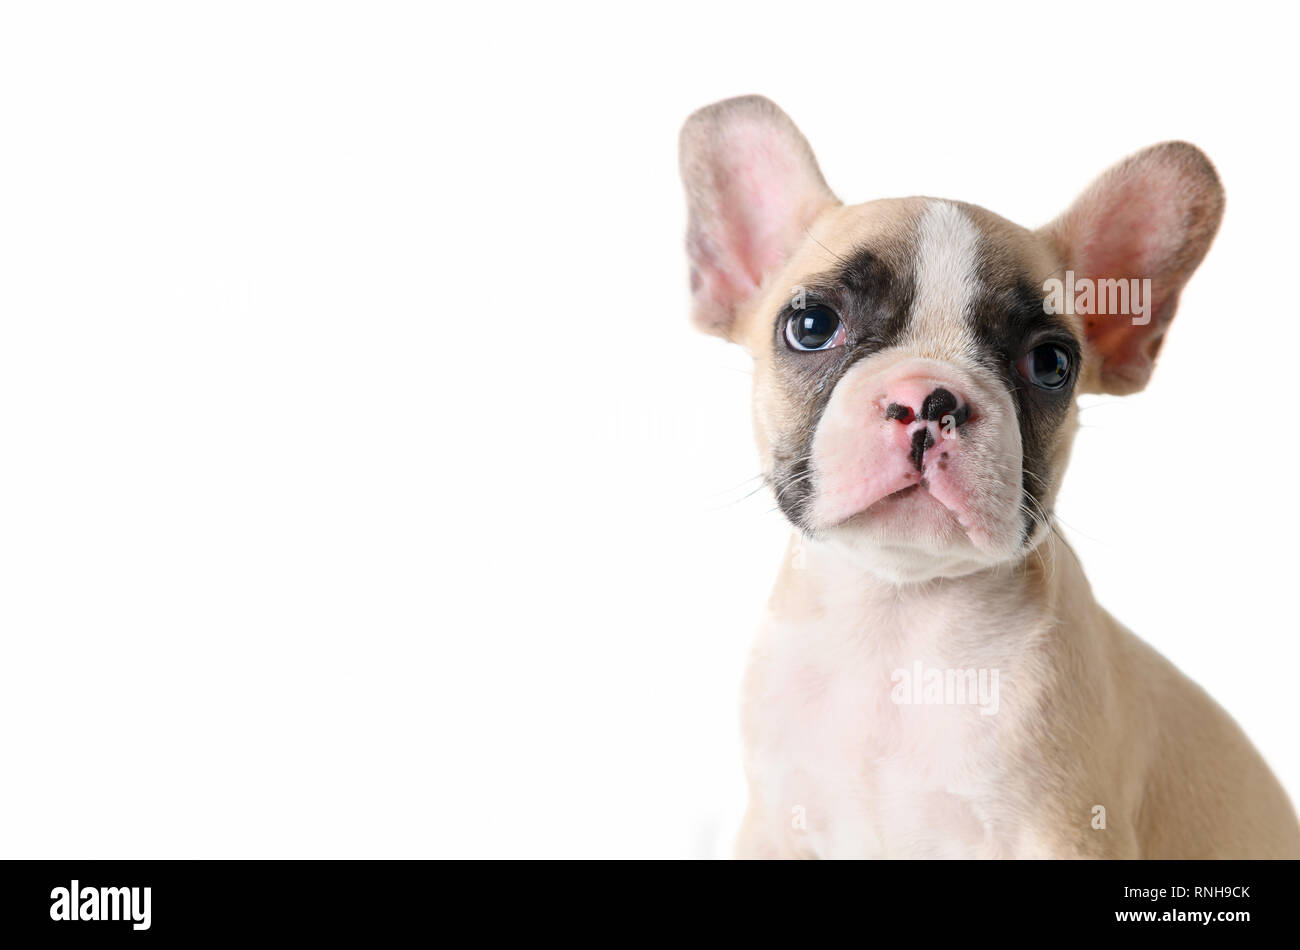 a0c393561784 Cute french bulldog puppy looking isolated on white background and copy  space for input text